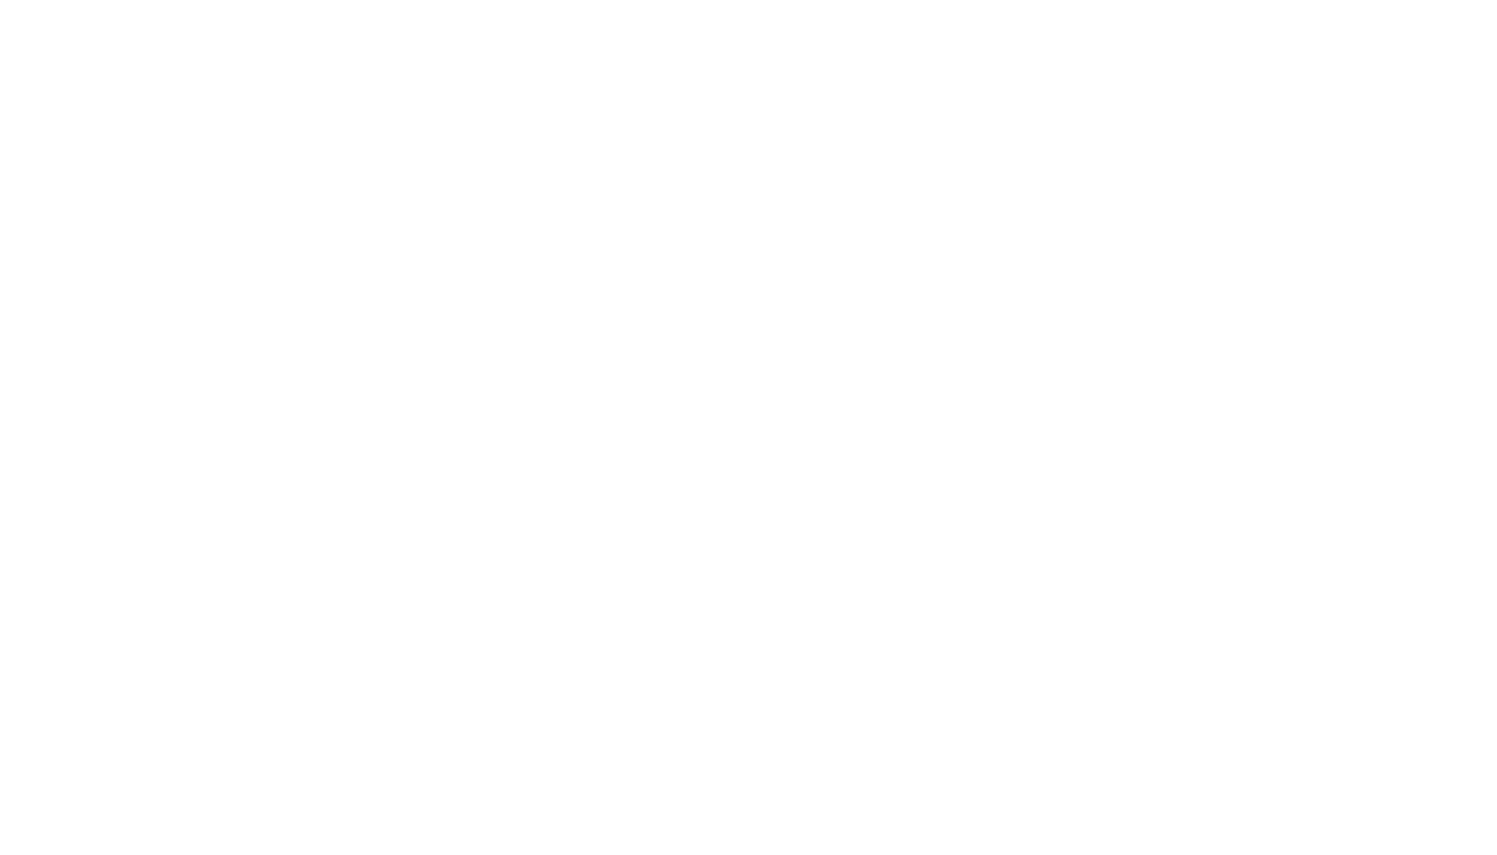 Greens. Grains. Gorgeous.